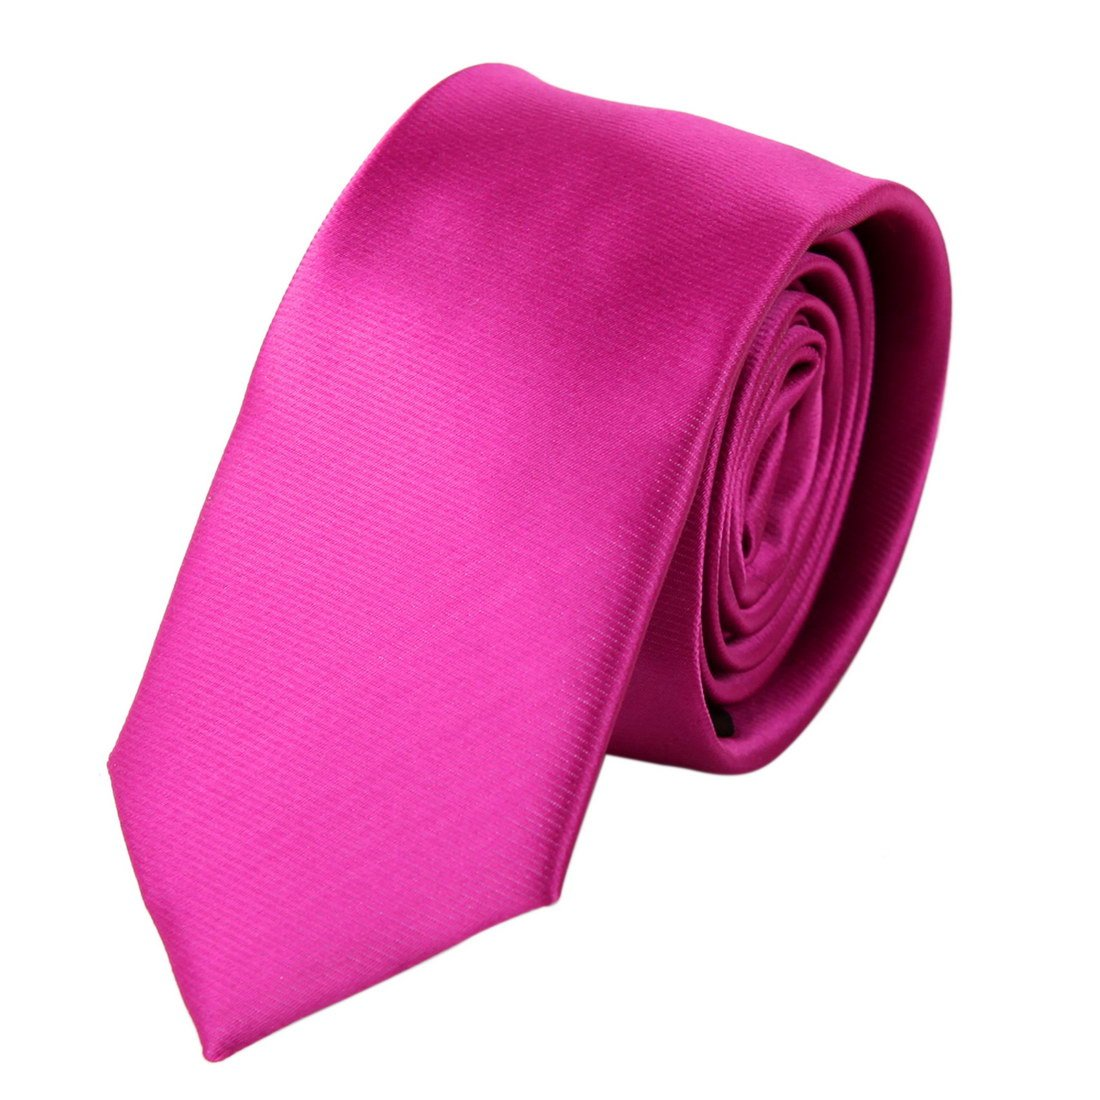 Pink Slim tie Matching Present Box Set Hot Pink gift dad PS1028 One Size Hot Pink